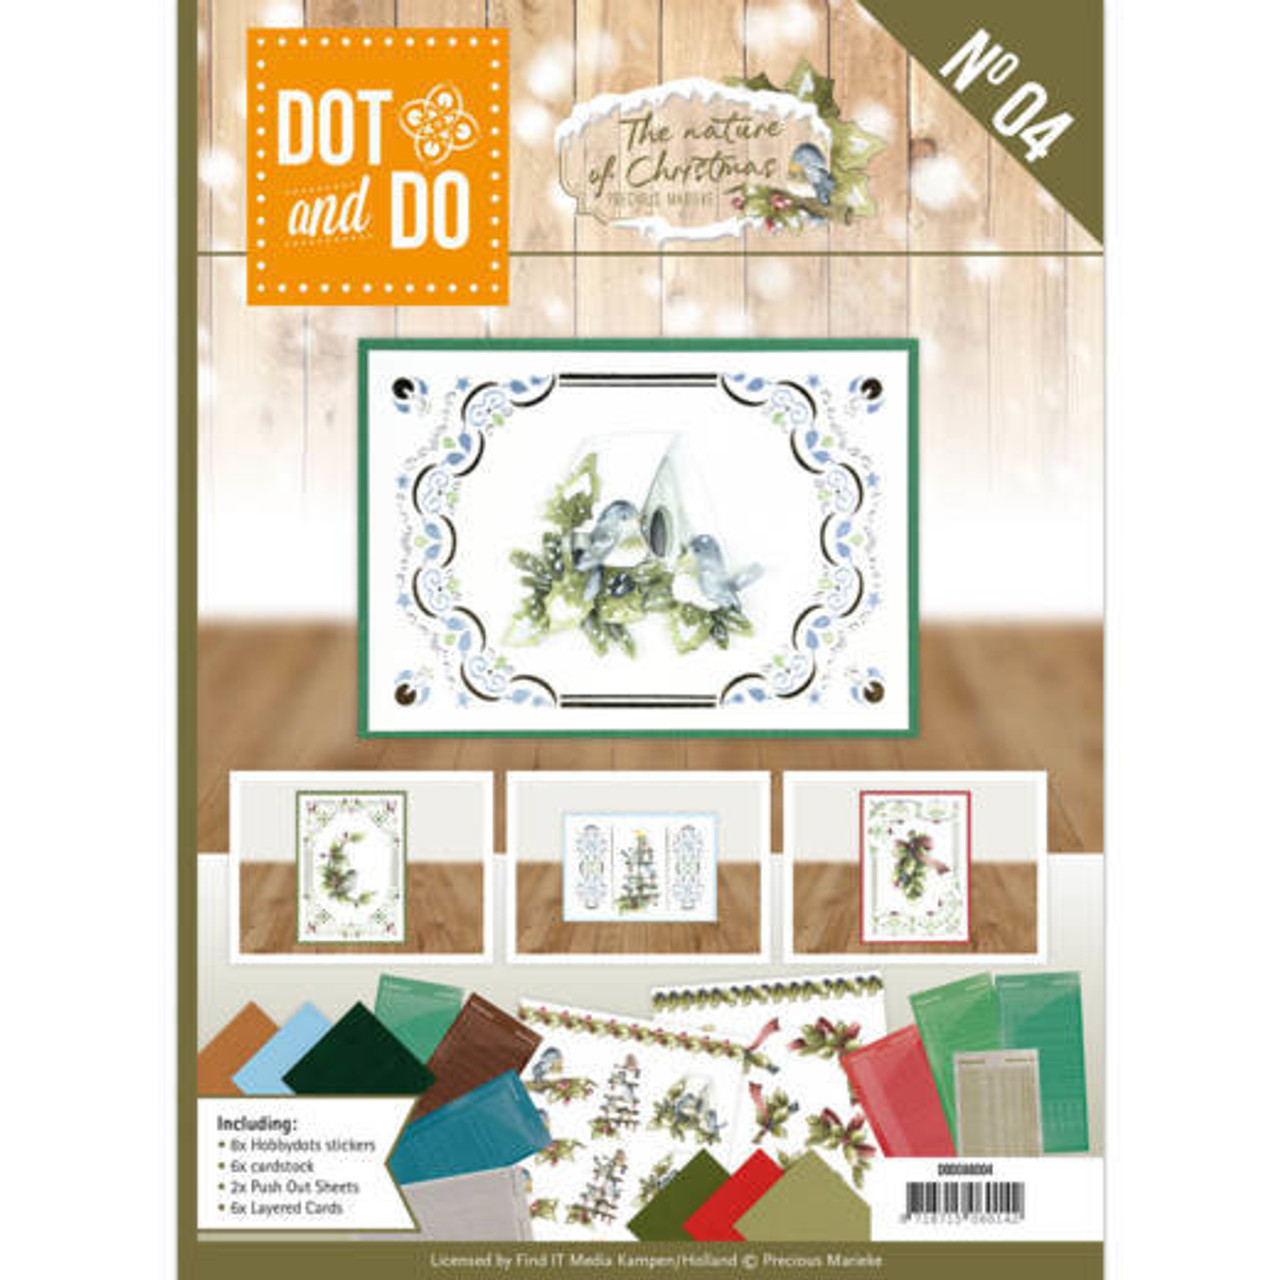 Dot and Do Book The Nature of Christmas - A6 Book 4